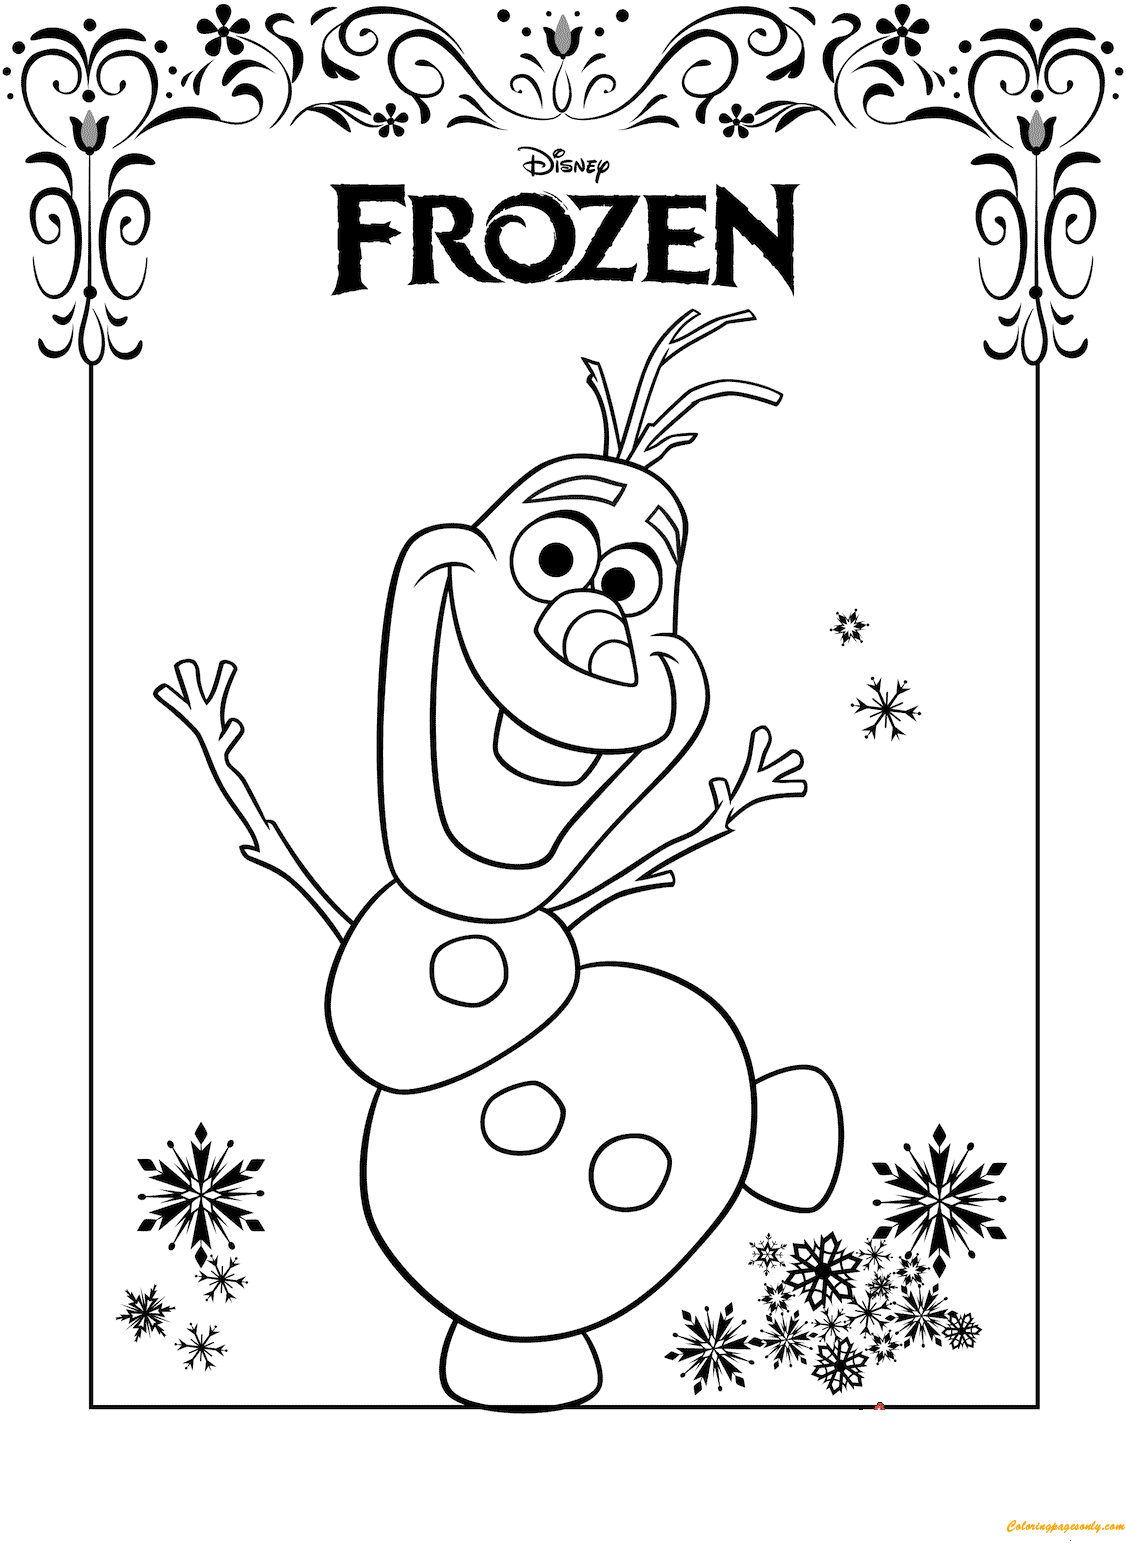 frozen 2 print coloring pages - photo#25